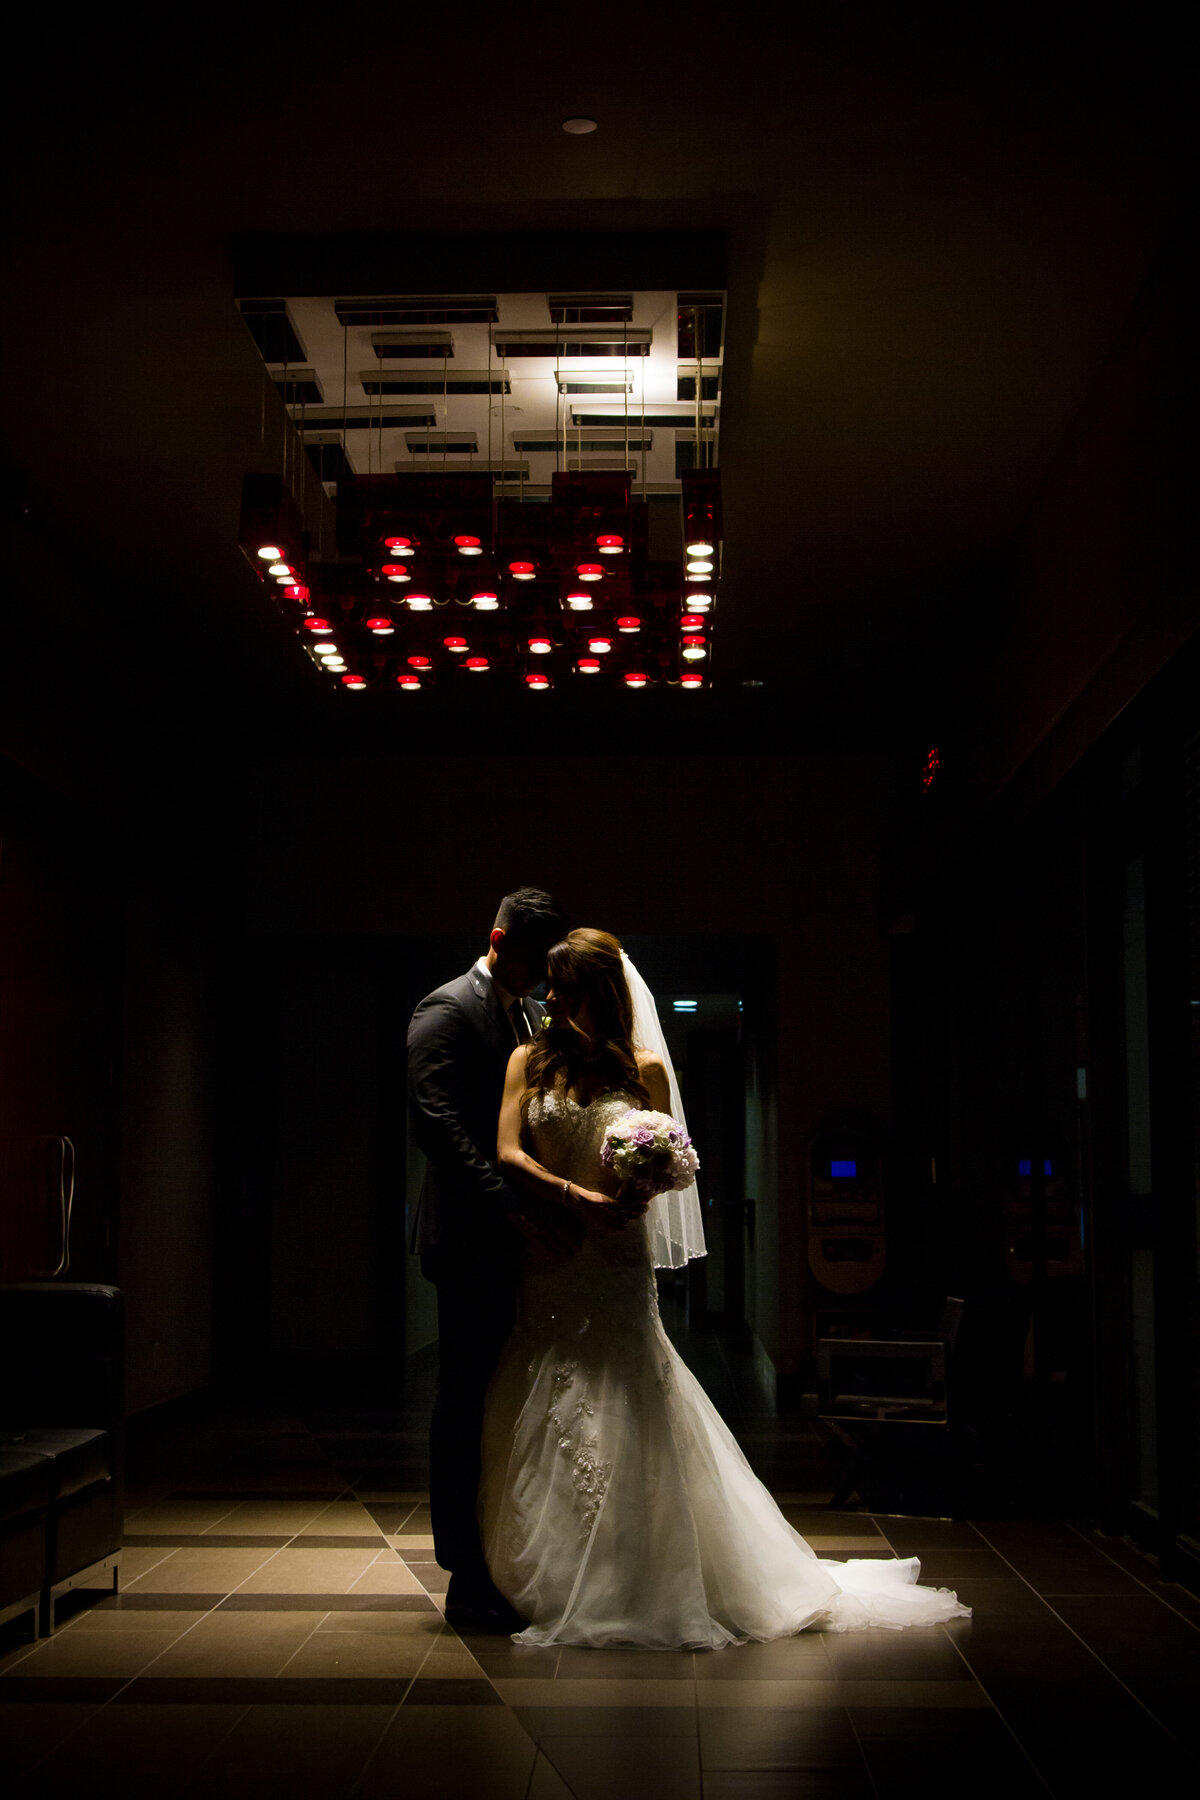 Dark lit wedding photo of couple during their first dance.